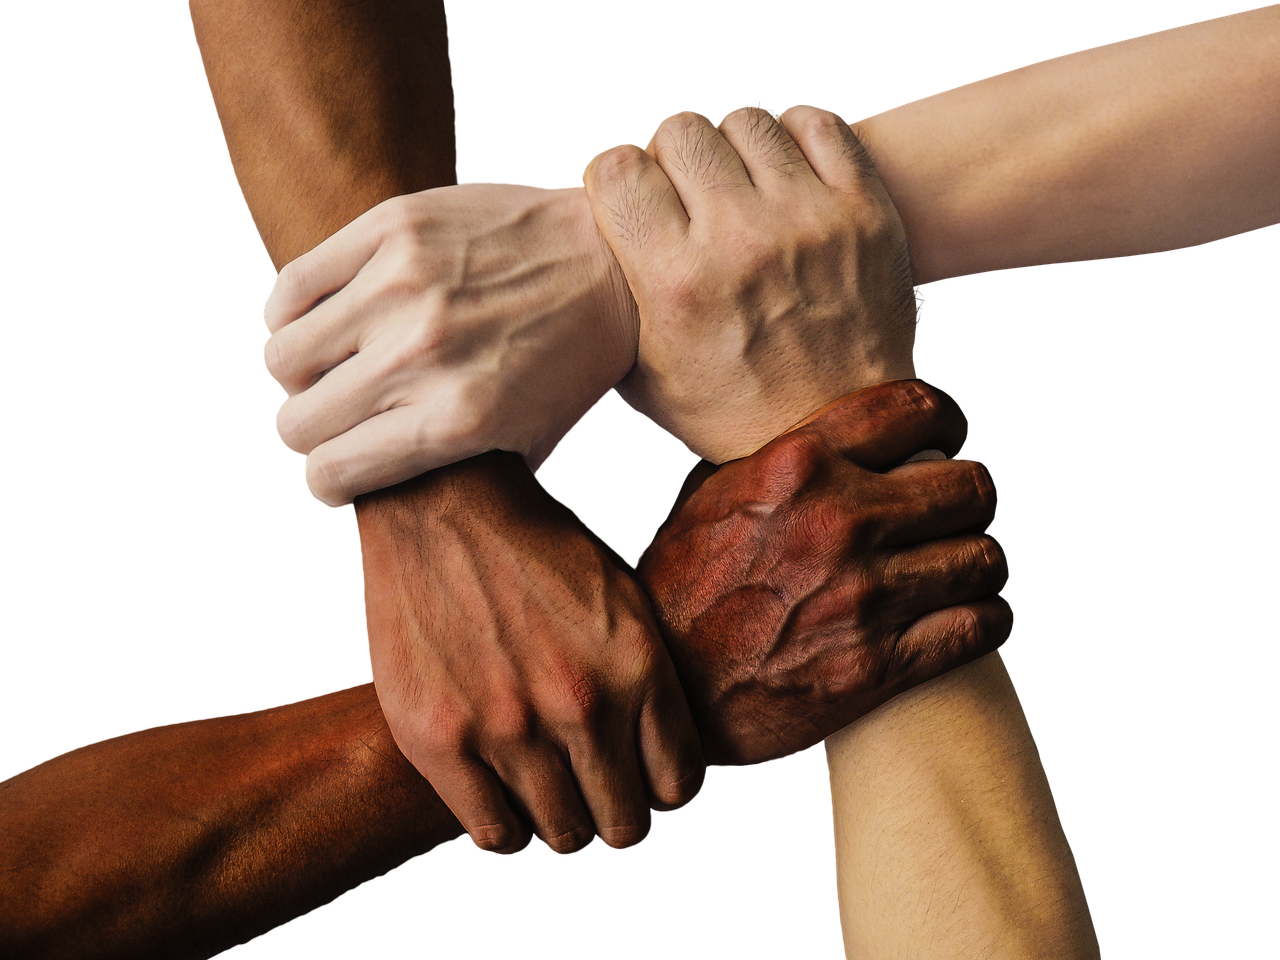 diverse characters - four hands of different races linked together